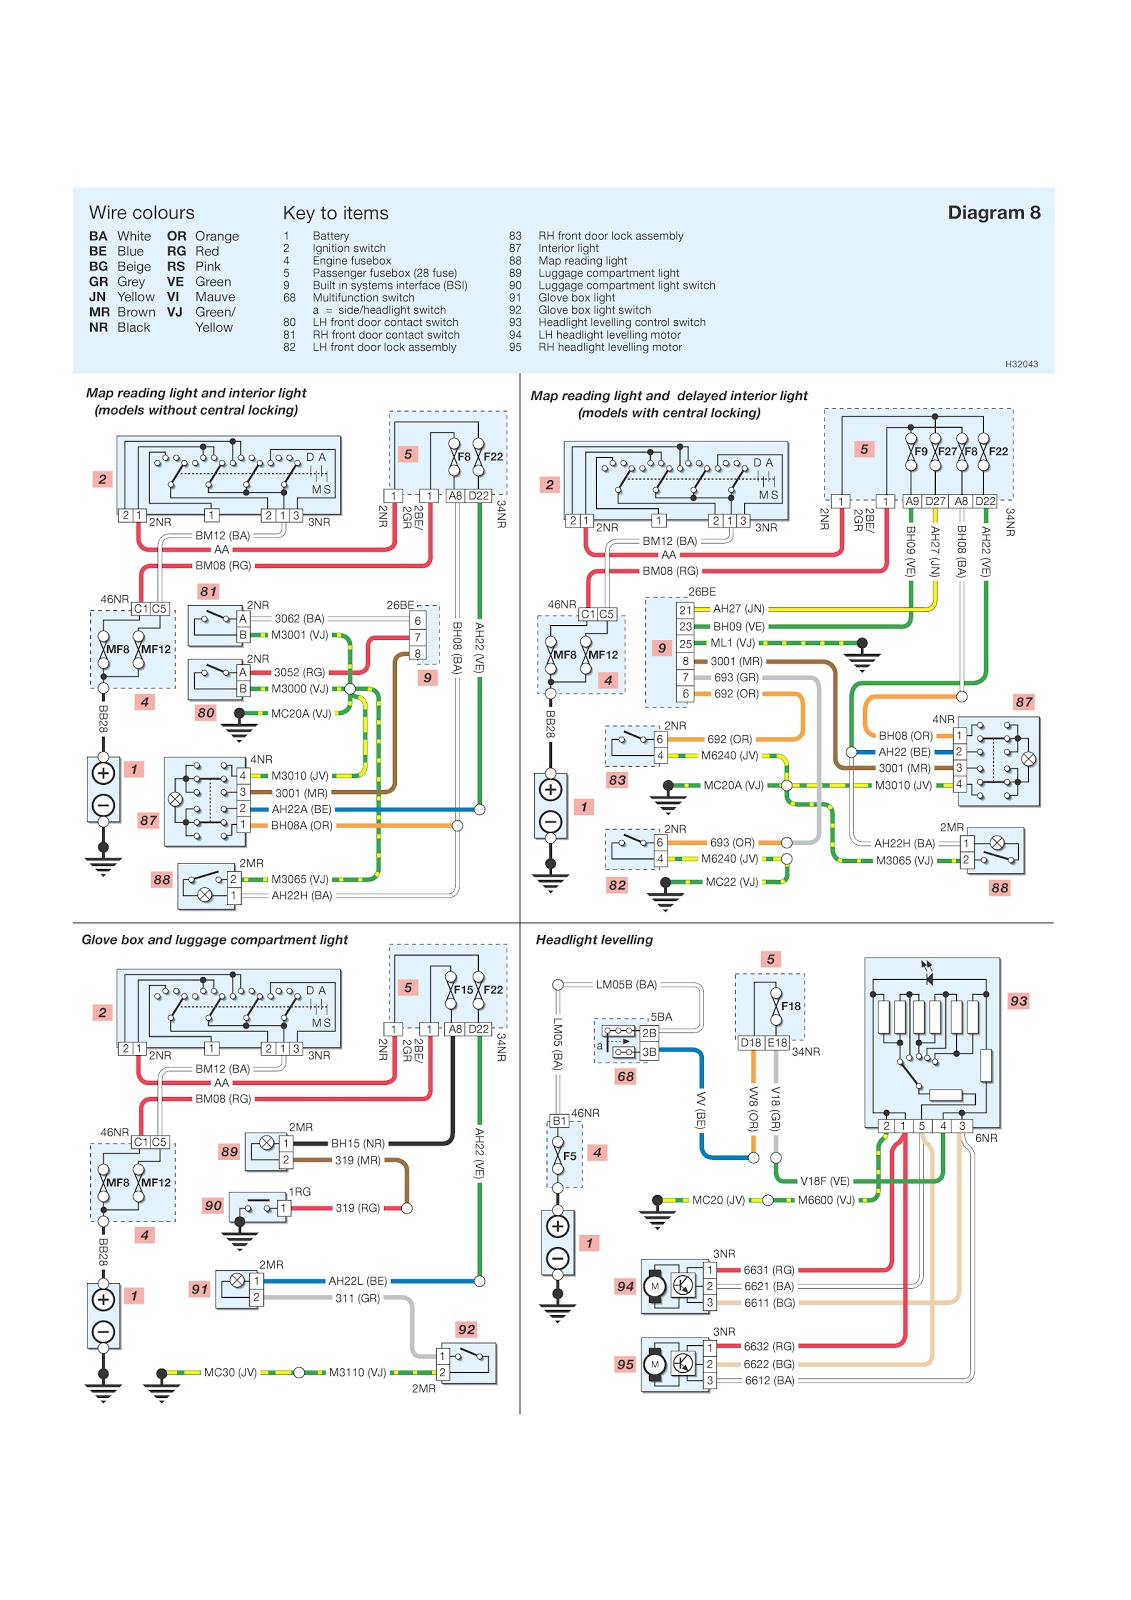 Peugeot Looxor 50 Wiring Diagram Electrical Diagrams Xps Trusted A Non Computer 700r4